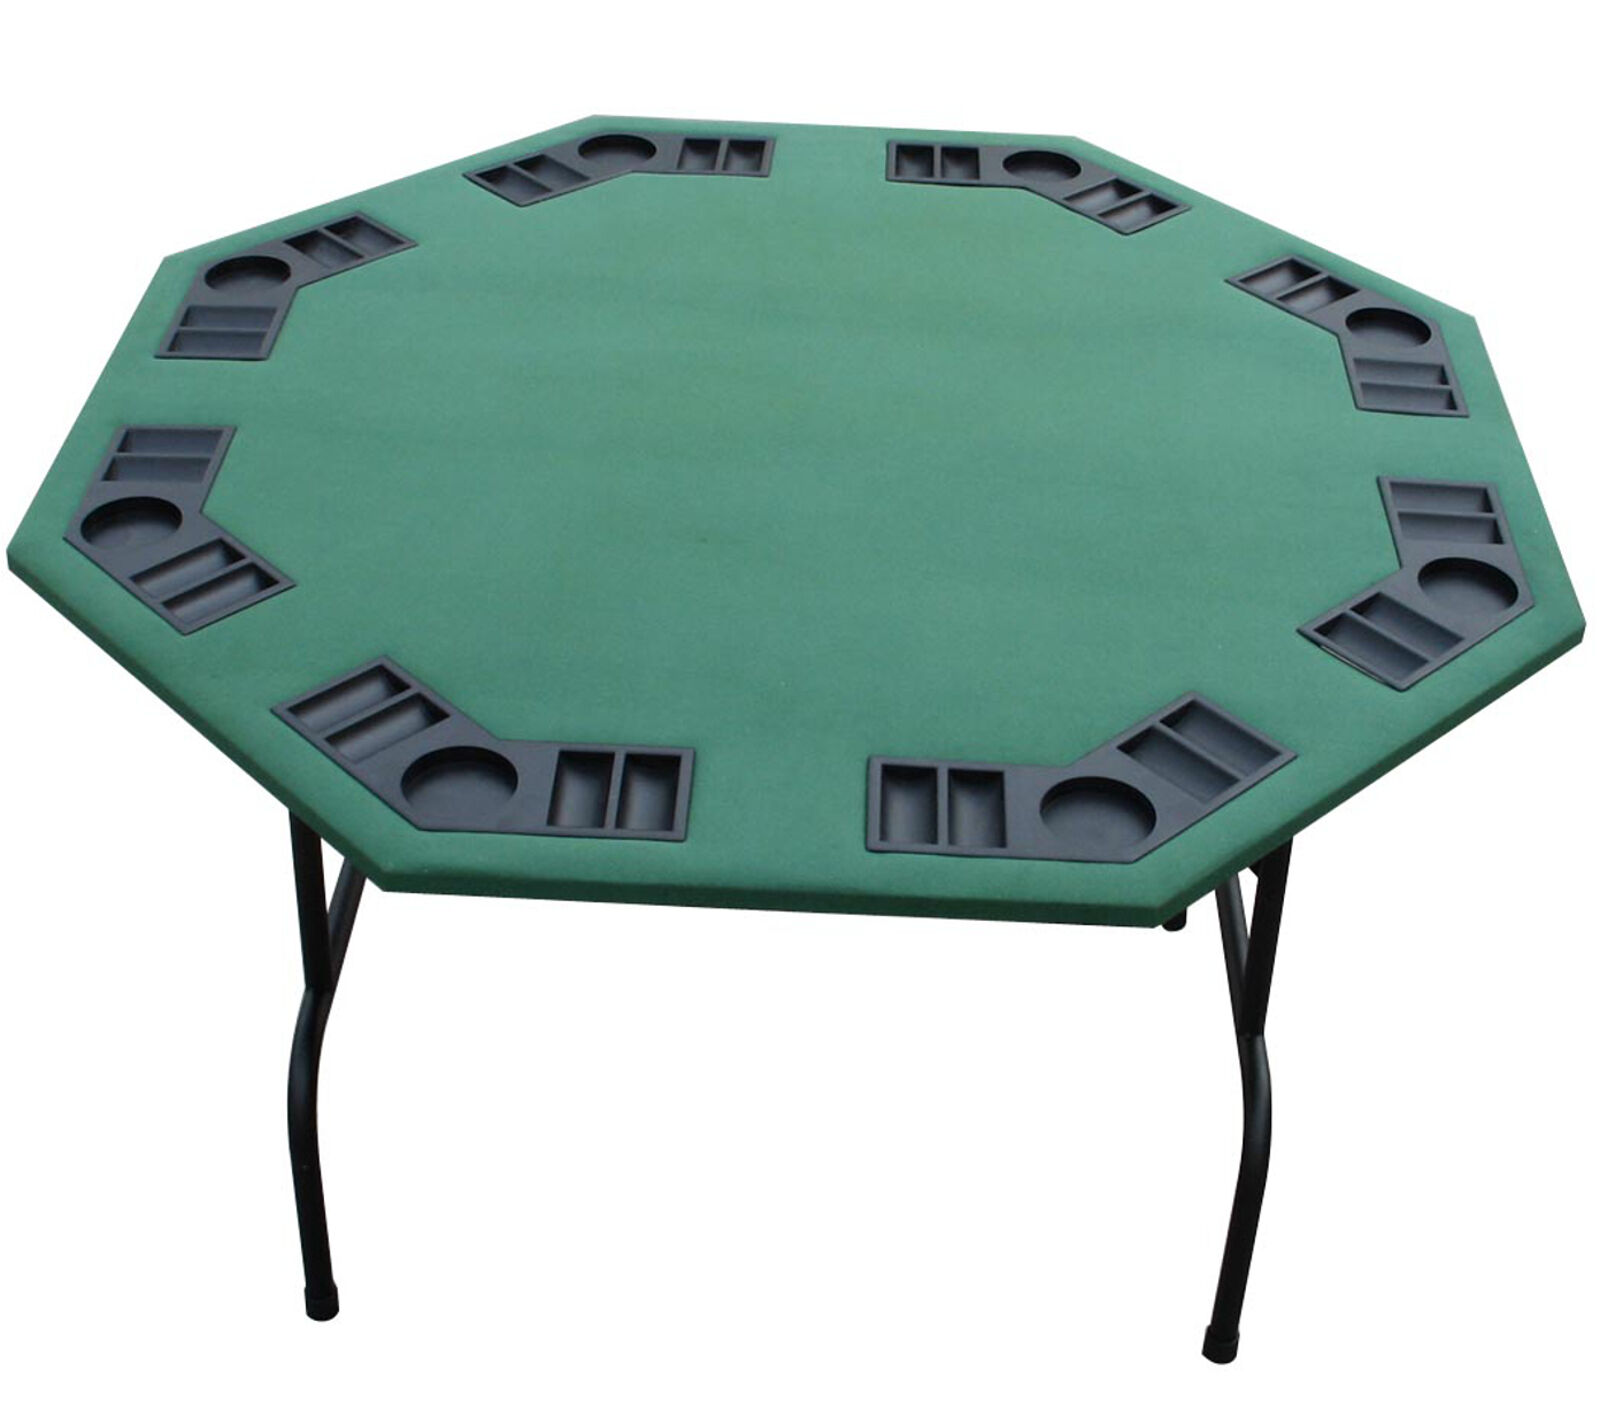 52 octagon green felt card game poker table folding steel for Table 52 cards 2014